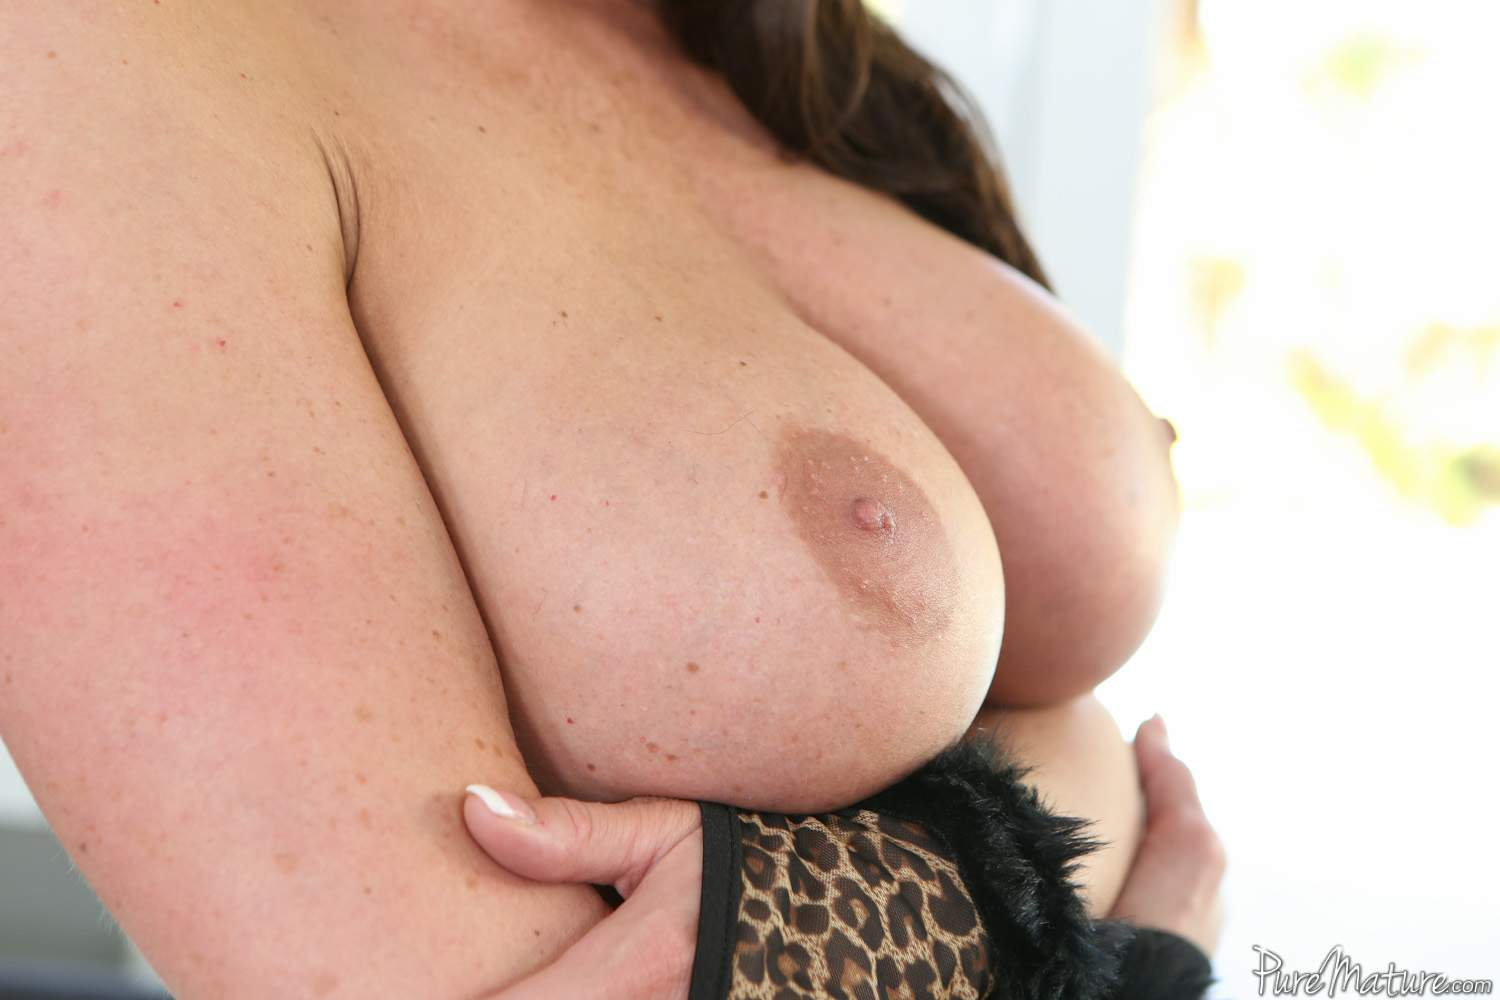 Impossible Make her purr puremature kendra lust consider, that